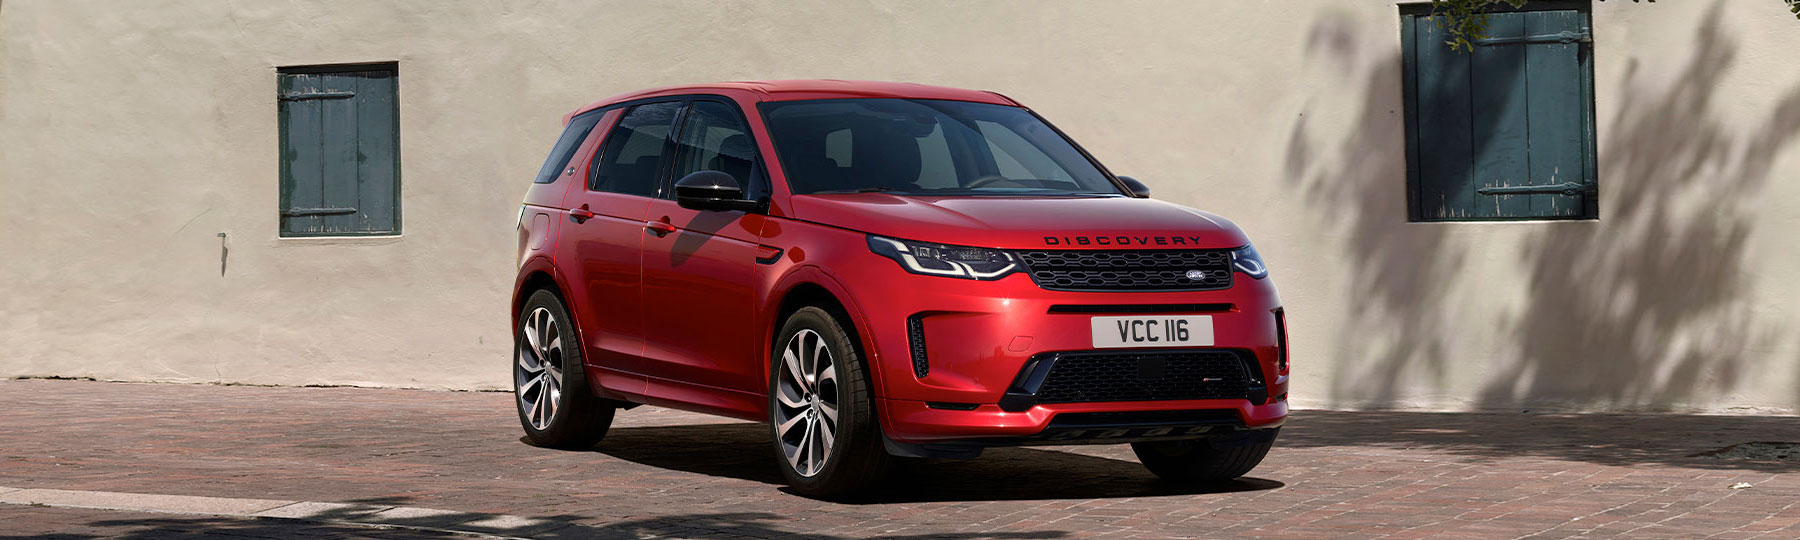 New Land Rover Discovery Sport Personal Contract Hire Offer